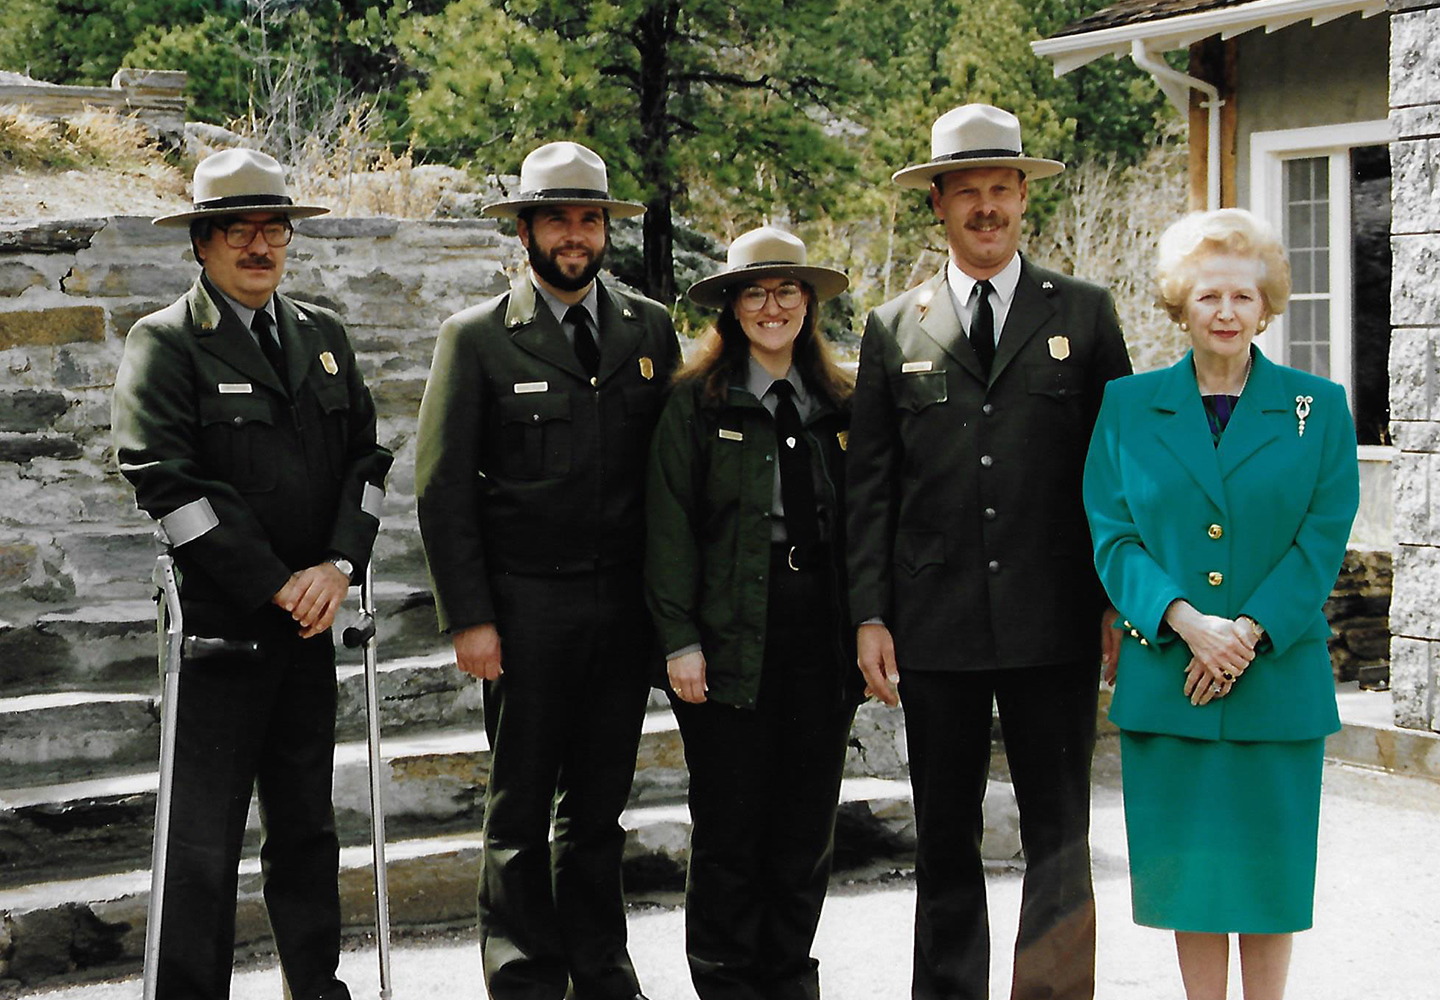 Jim Popovich at Mount Rushmore with Margaret Thatcher